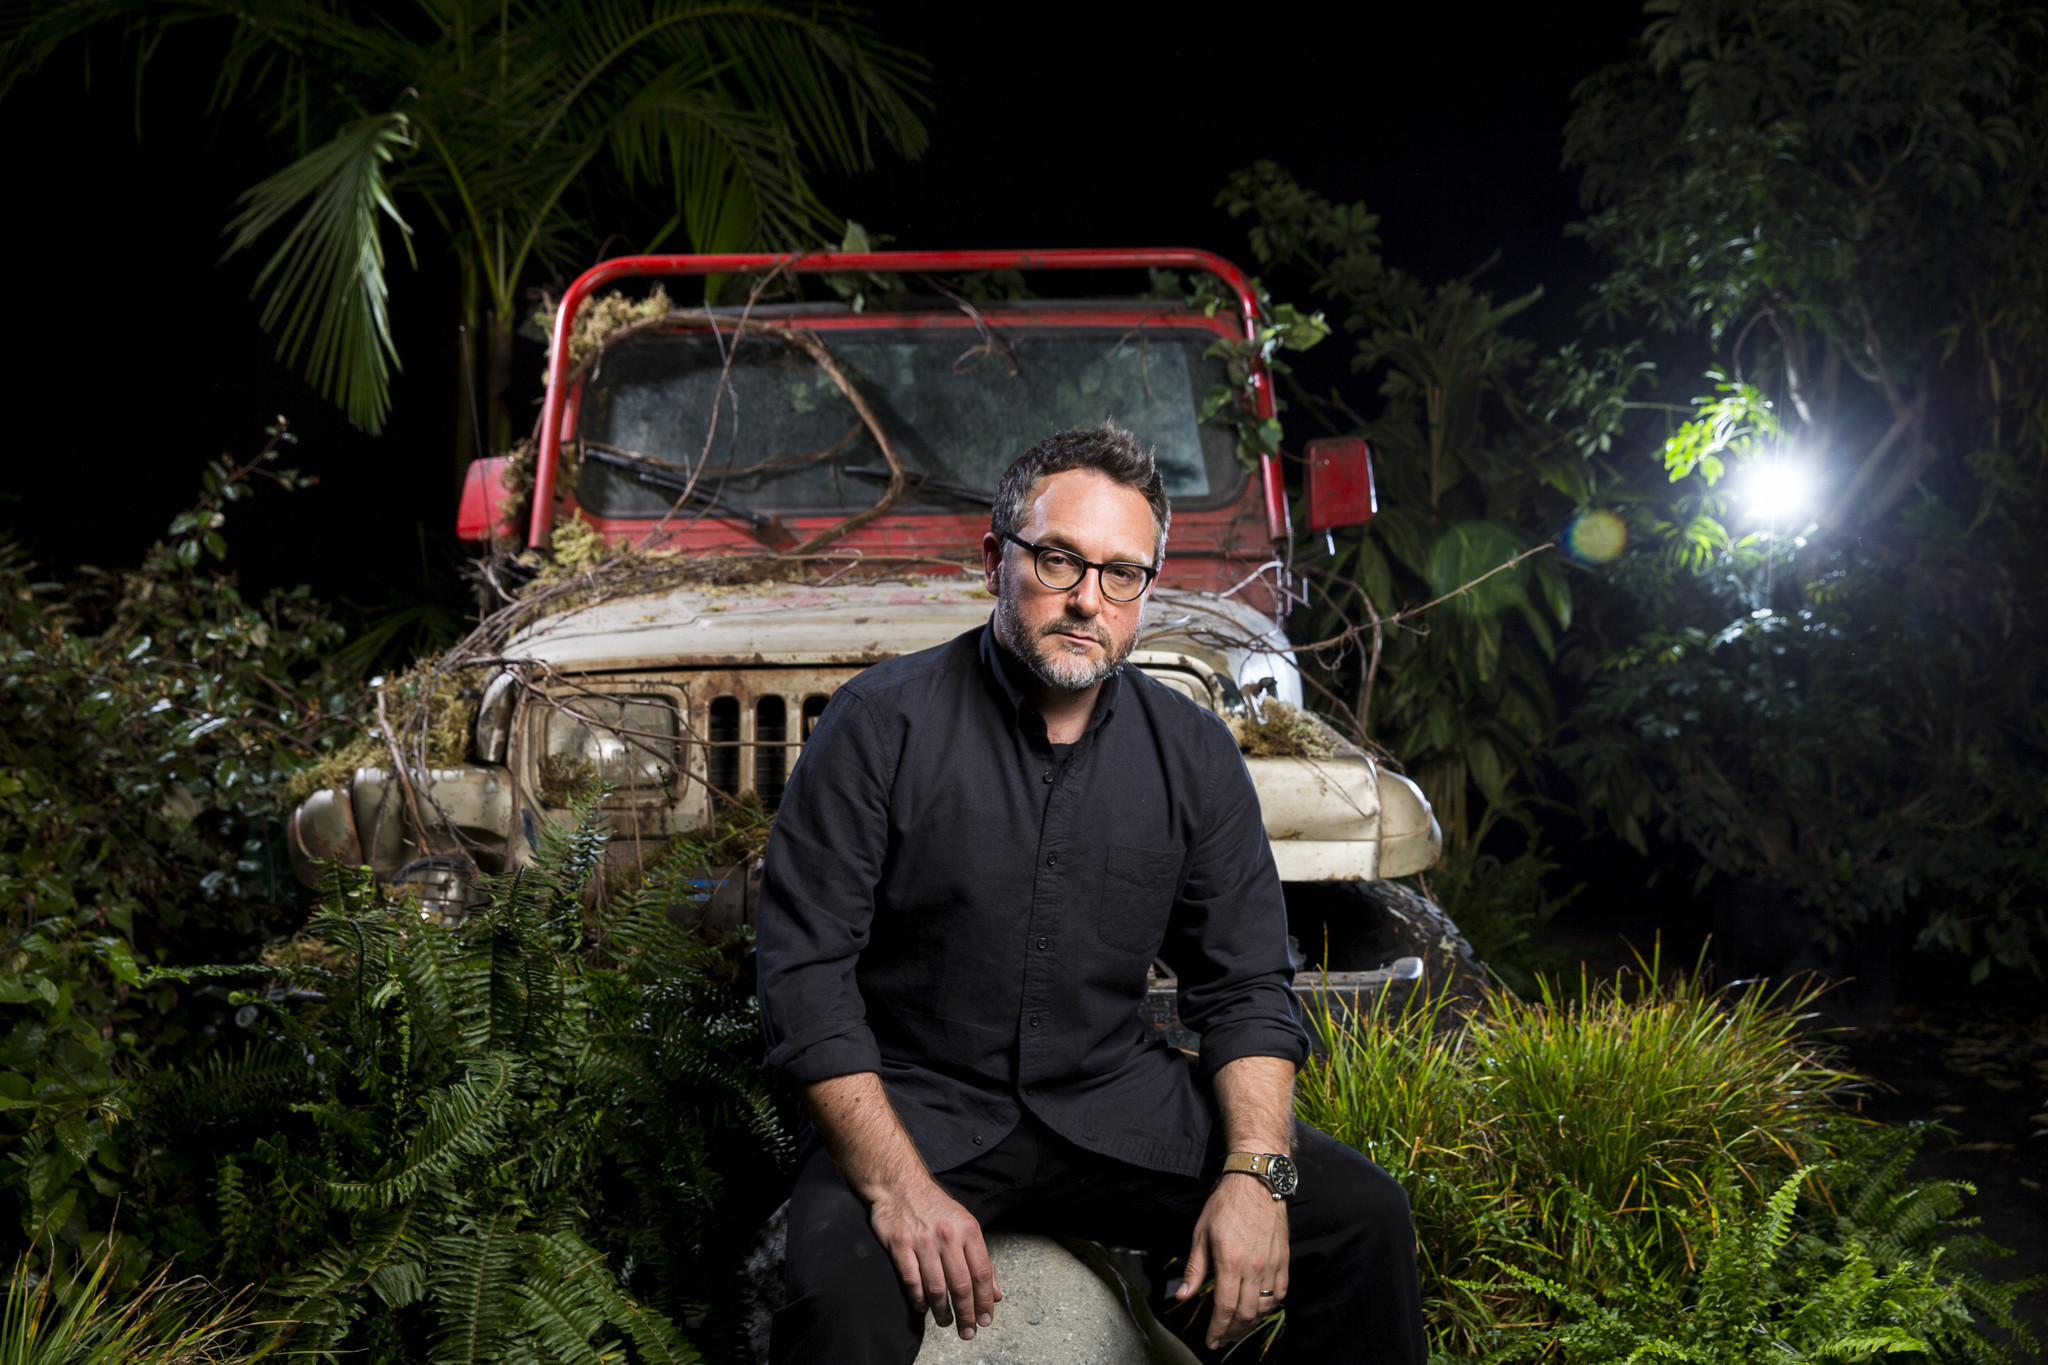 colin trevorrow vermontcolin trevorrow wiki, colin trevorrow twitter, colin trevorrow imdb, colin trevorrow net worth, colin trevorrow jurassic world, colin trevorrow instagram, colin trevorrow films, colin trevorrow home base, colin trevorrow book of henry, colin trevorrow director, colin trevorrow biography, colin trevorrow rey, colin trevorrow movies, colin trevorrow vermont, colin trevorrow star wars 9, colin trevorrow rotten tomatoes, colin trevorrow filmografia, colin trevorrow facebook, colin trevorrow jurassic world interview, colin trevorrow filmographie